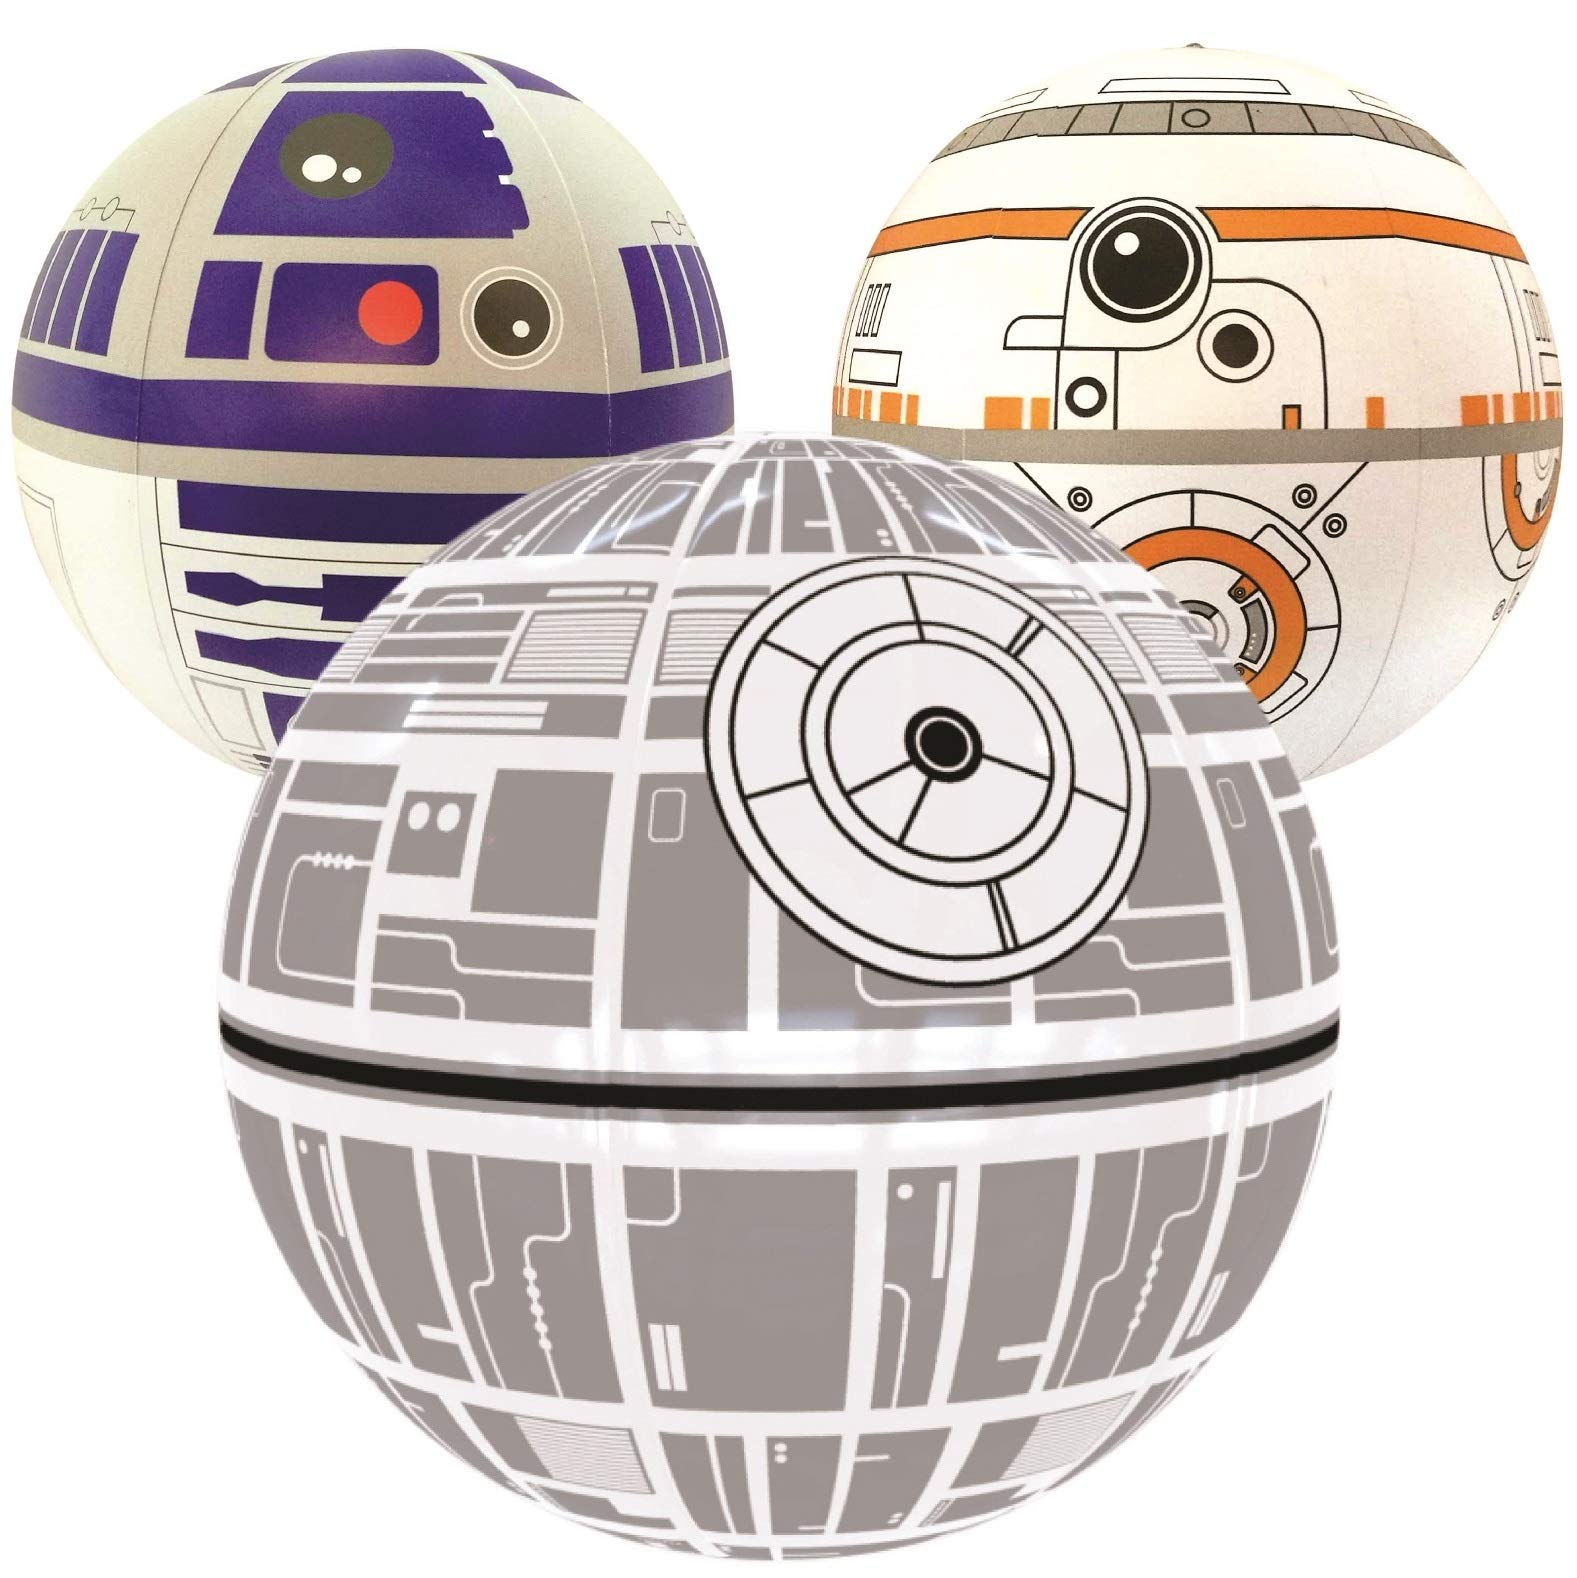 Nino-star Large Beach Ball Set of 3 - Pool Inflatable Water Toys - Fun Summer Gift